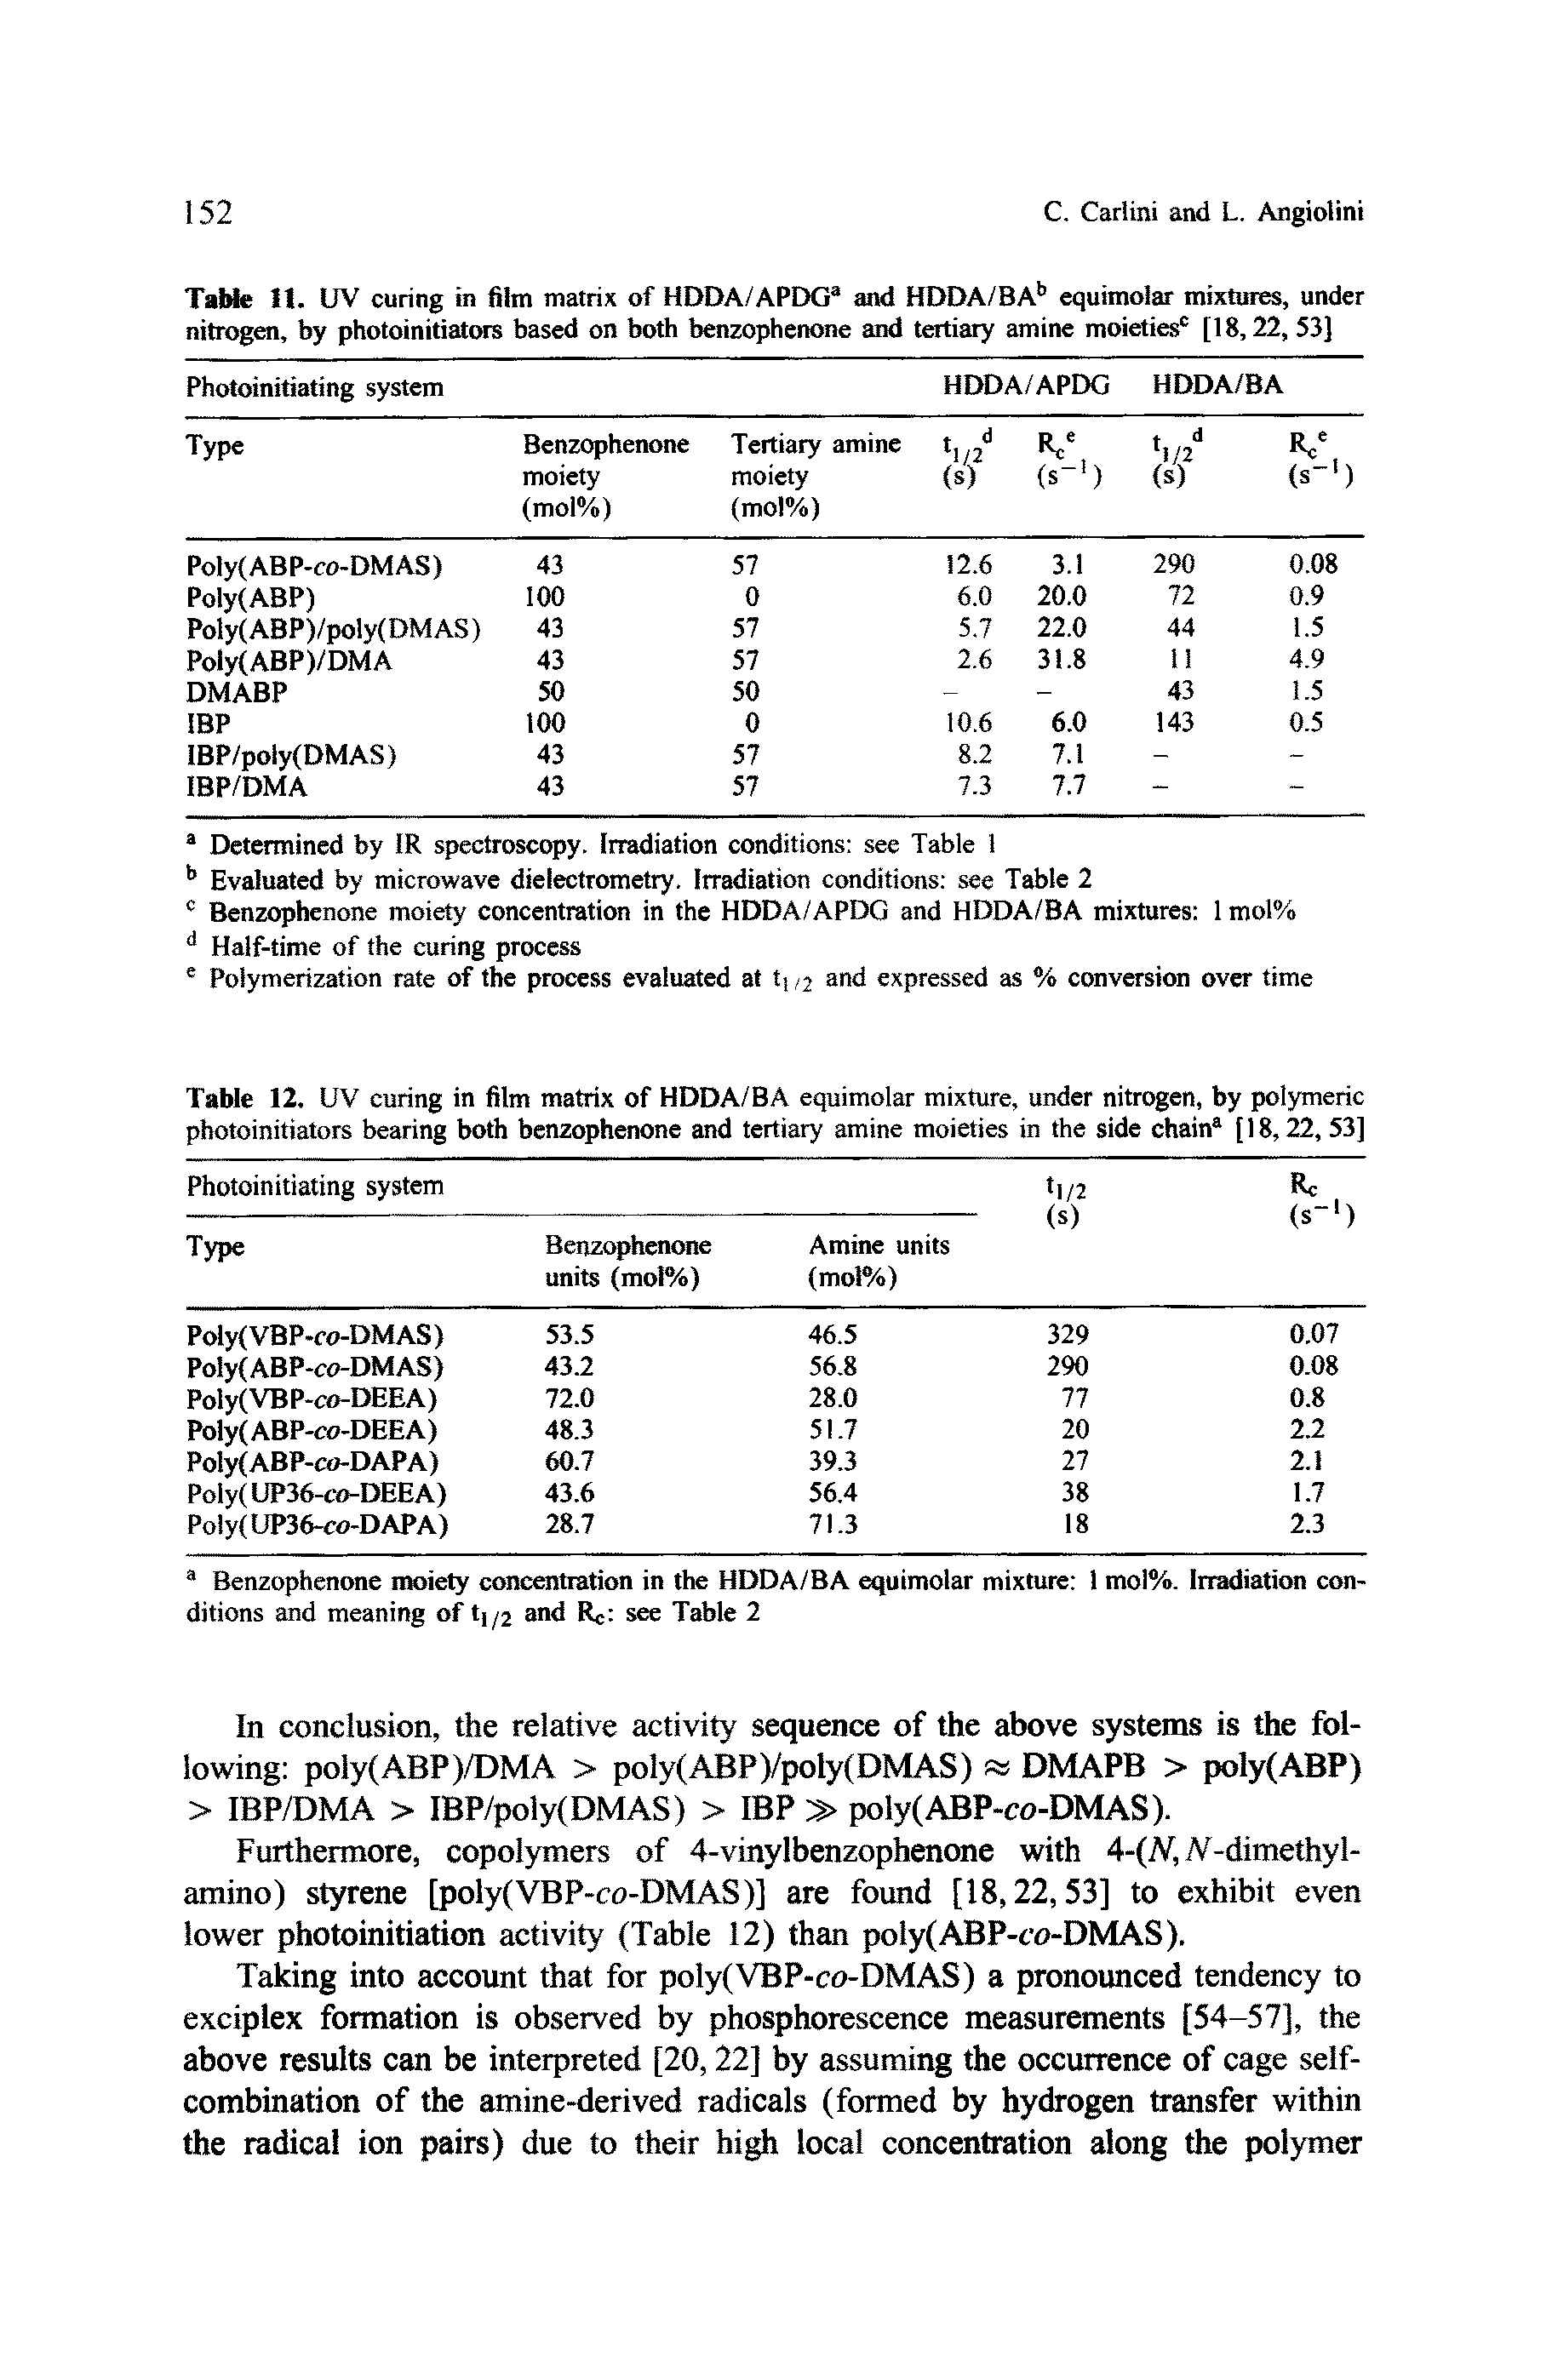 "Table 12. UV curing in film matrix of HDDA/BA <a href=""/info/h2_equimolar_mixture"">equimolar mixture</a>, under nitrogen, by <a href=""/info/photoinitiation_of_polymerization"">polymeric photoinitiators</a> bearing both benzophenone and tertiary amine moieties in the side chain [18,22, 53]"